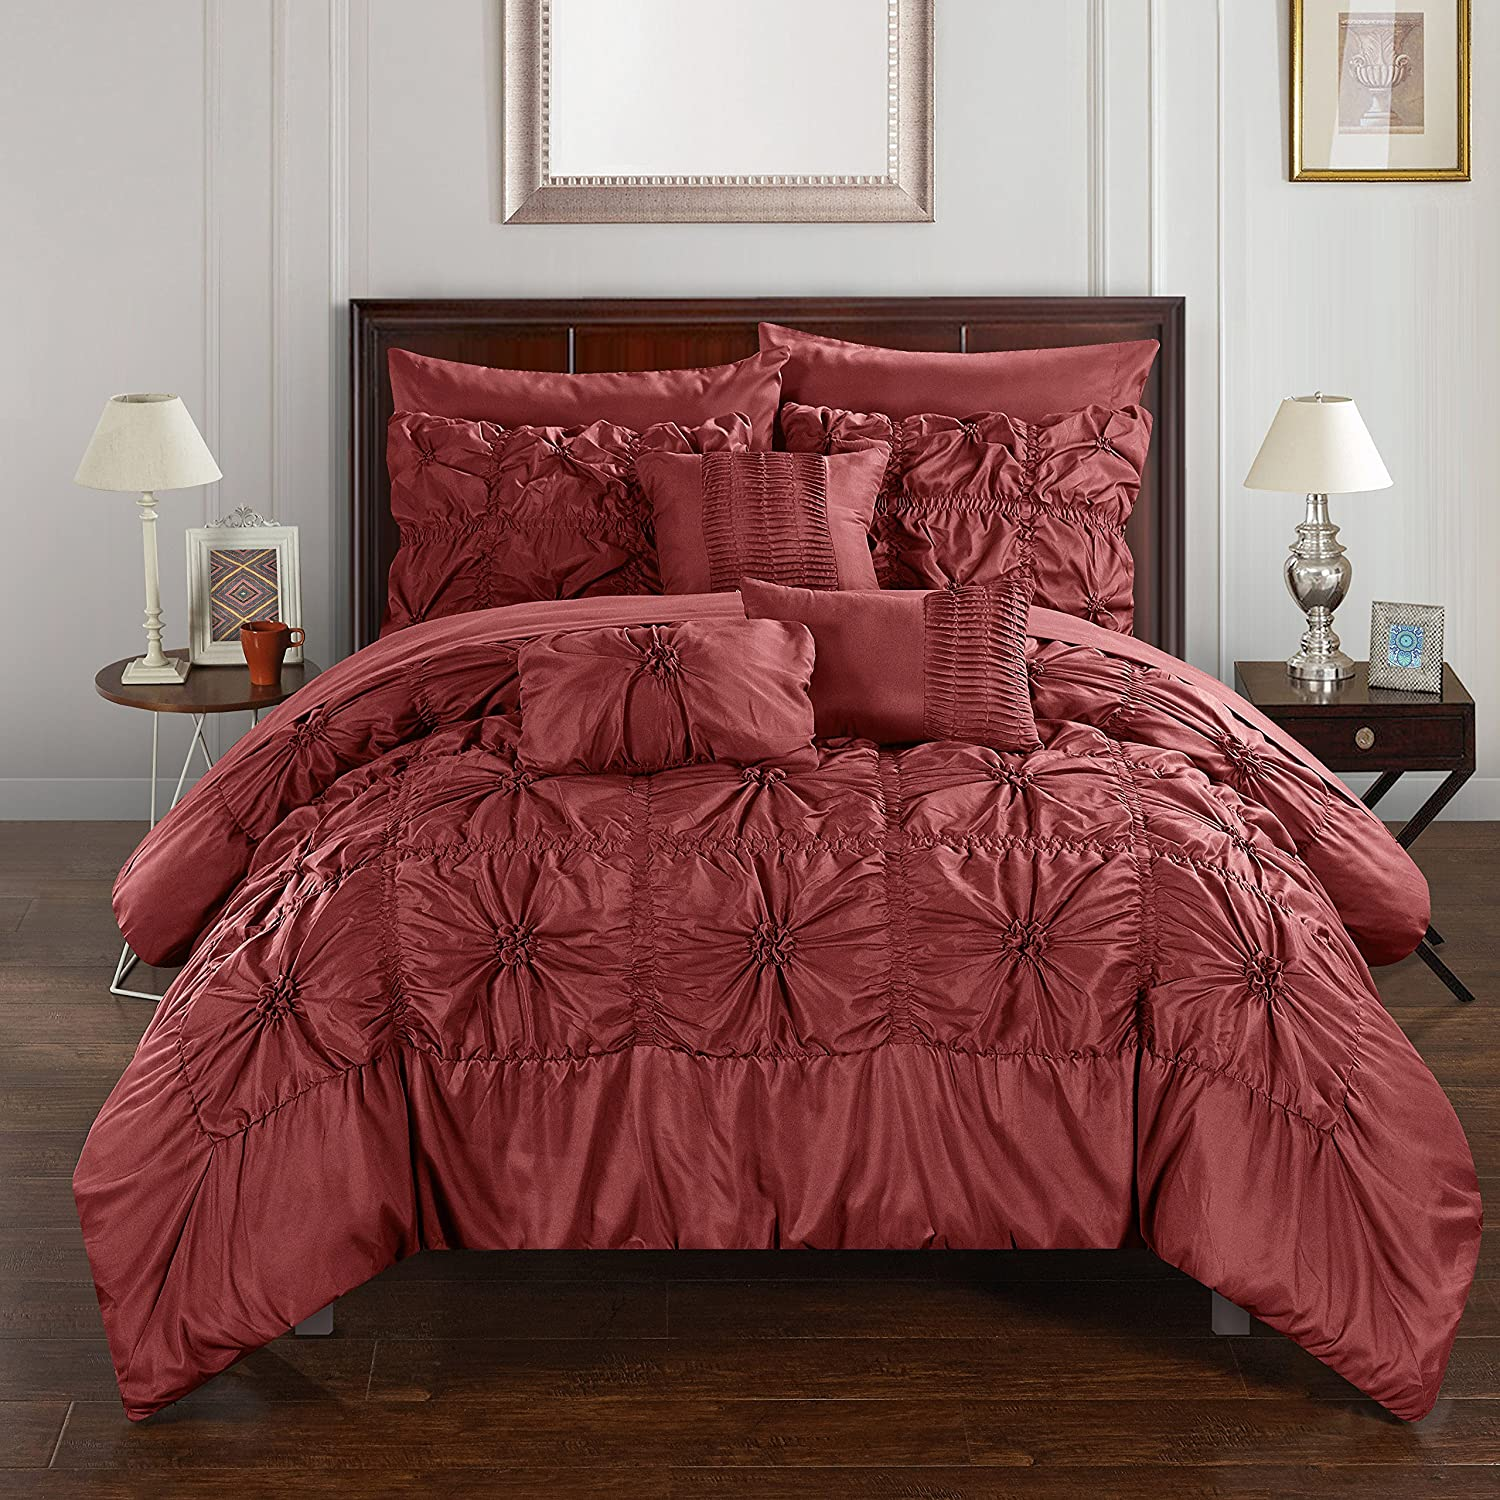 Upto 60% off On Global Savings By Amazon | Chic Home CS3589-AN 10 Piece Springfield Floral Pinch Pleat Ruffled Designer Embellished Bed In A Bag Comforter Set With Sheet Set, Queen, Brick Red @ Rs.13,514